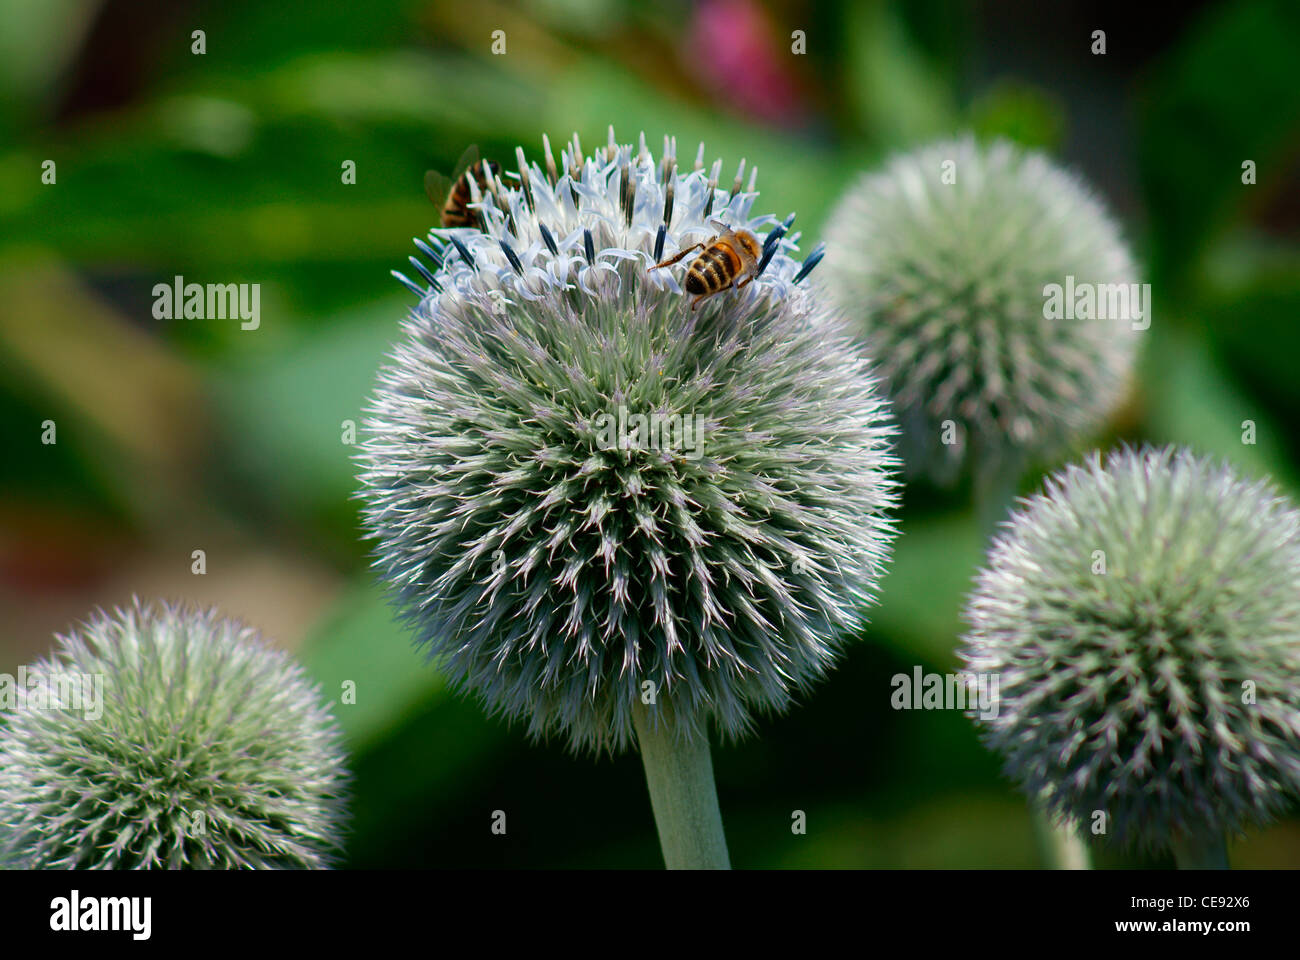 Blue Globe Thistle (Echinops ritro 'Veitch's Blue') with Honey Bees Feeding & Collecting Pollen - Stock Image